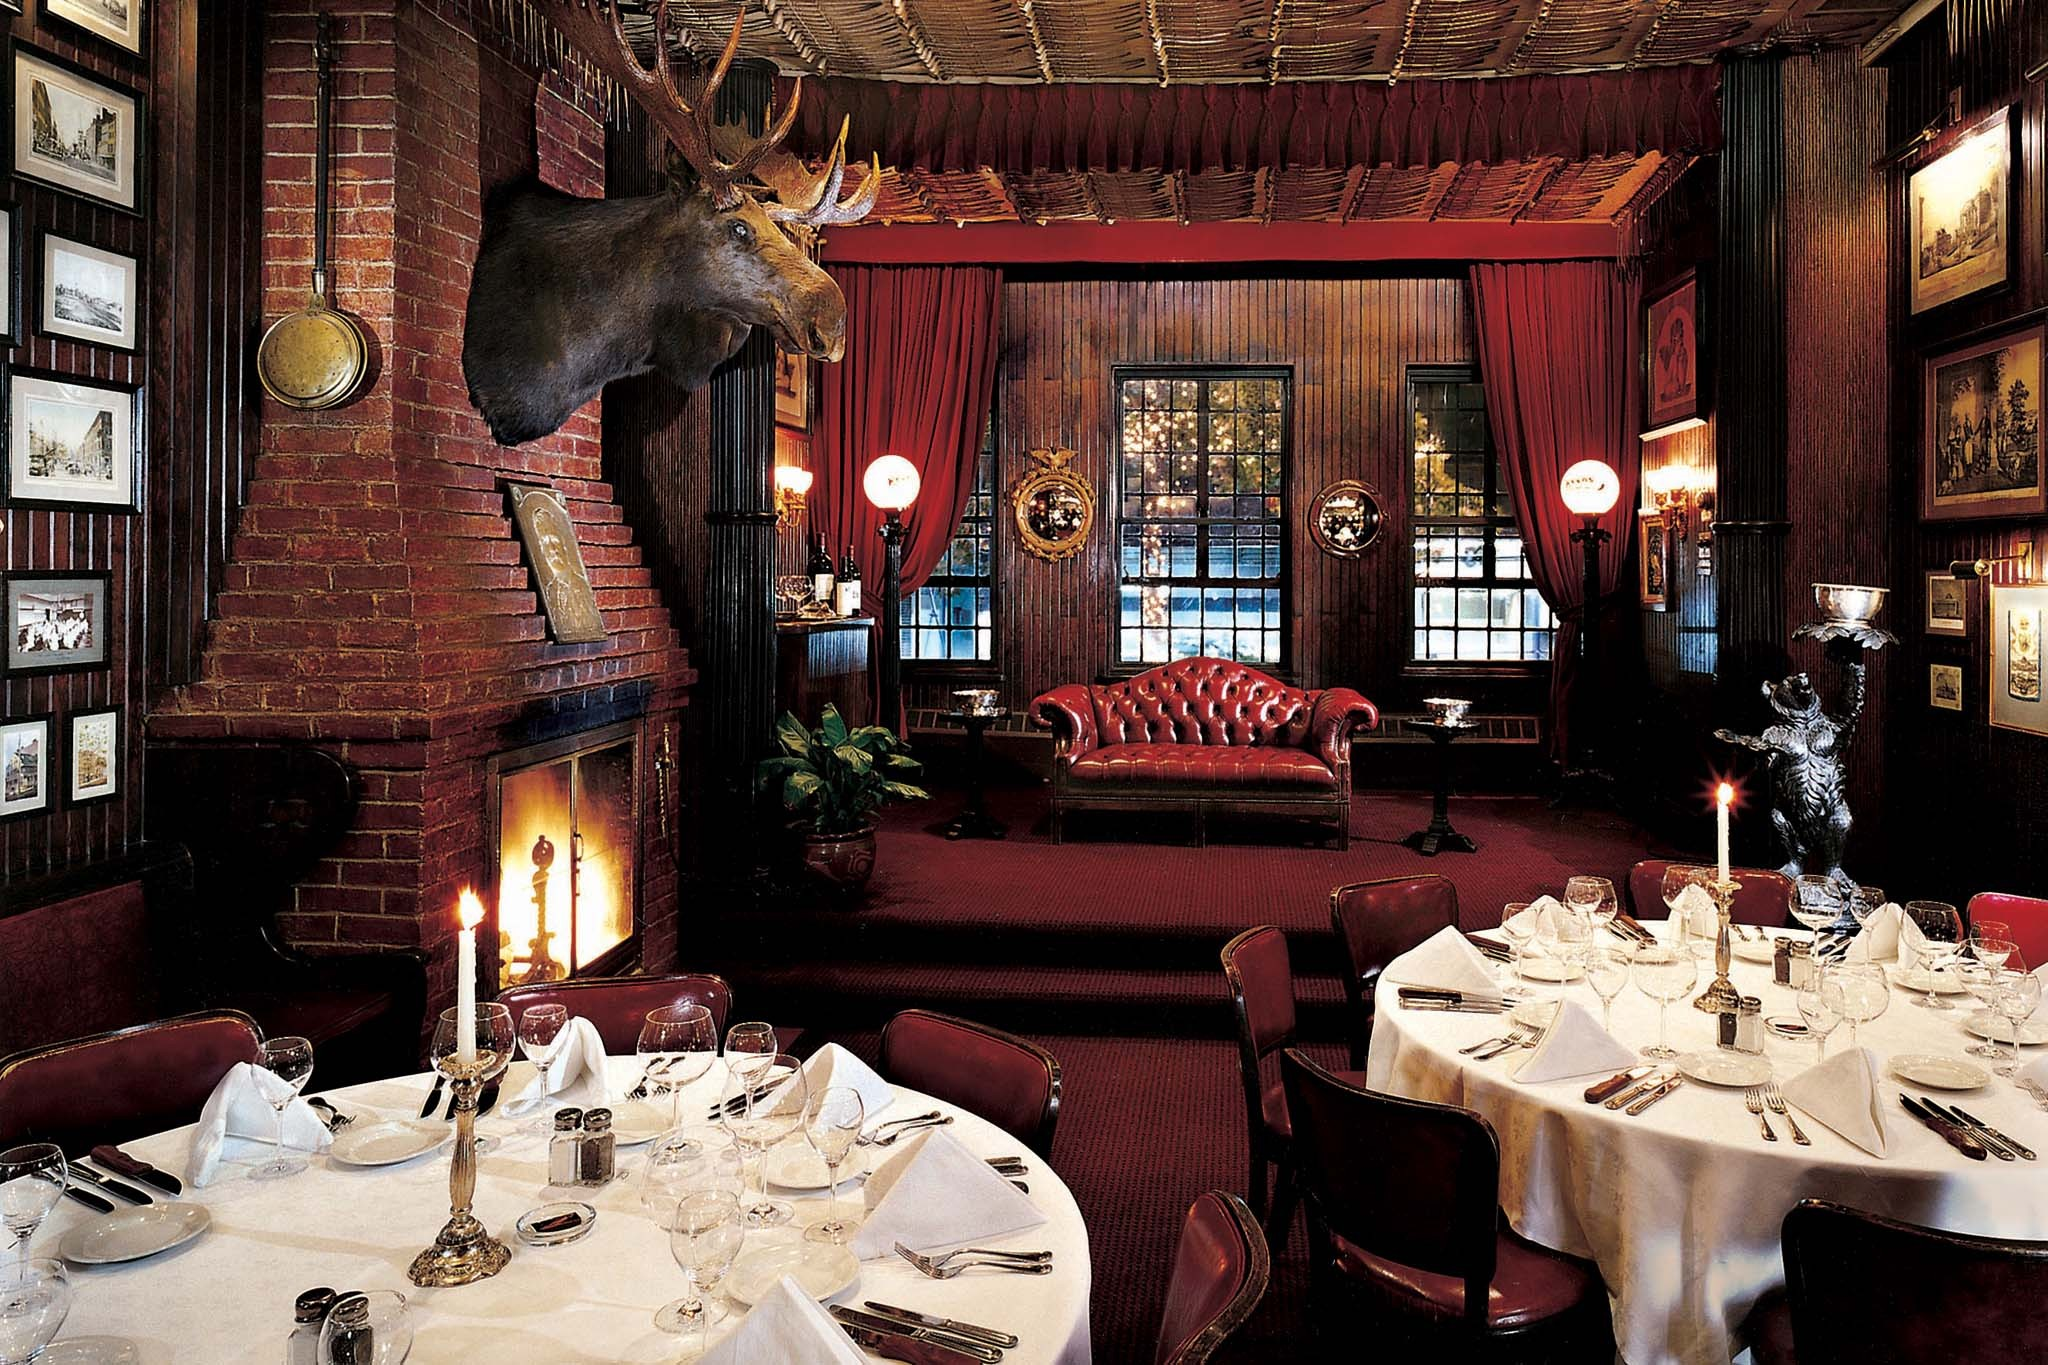 Restaurant A New York Best Steakhouses In Nyc Including Peter Luger And Wolfgang 39s